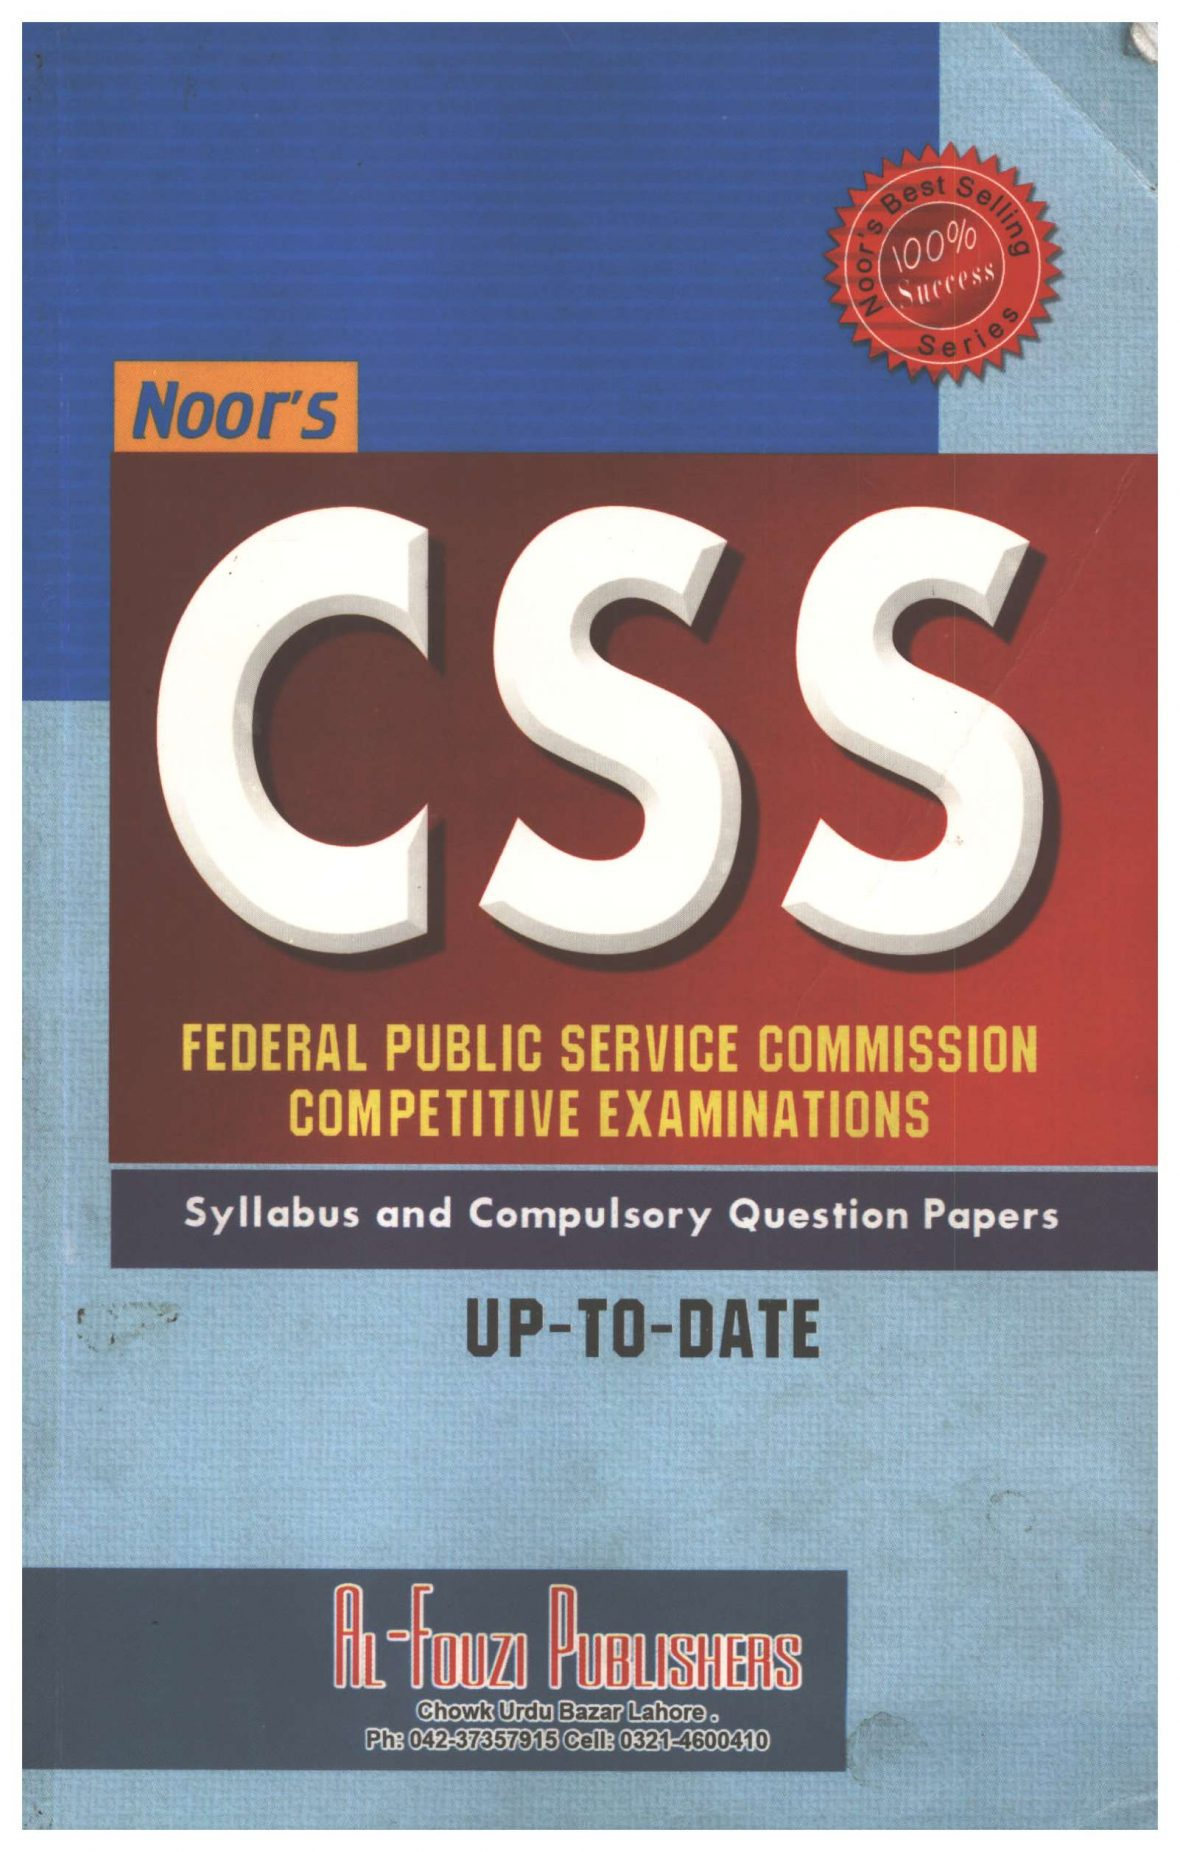 Federal Public Service Commission CSS Syllabus and Compulsory Papers